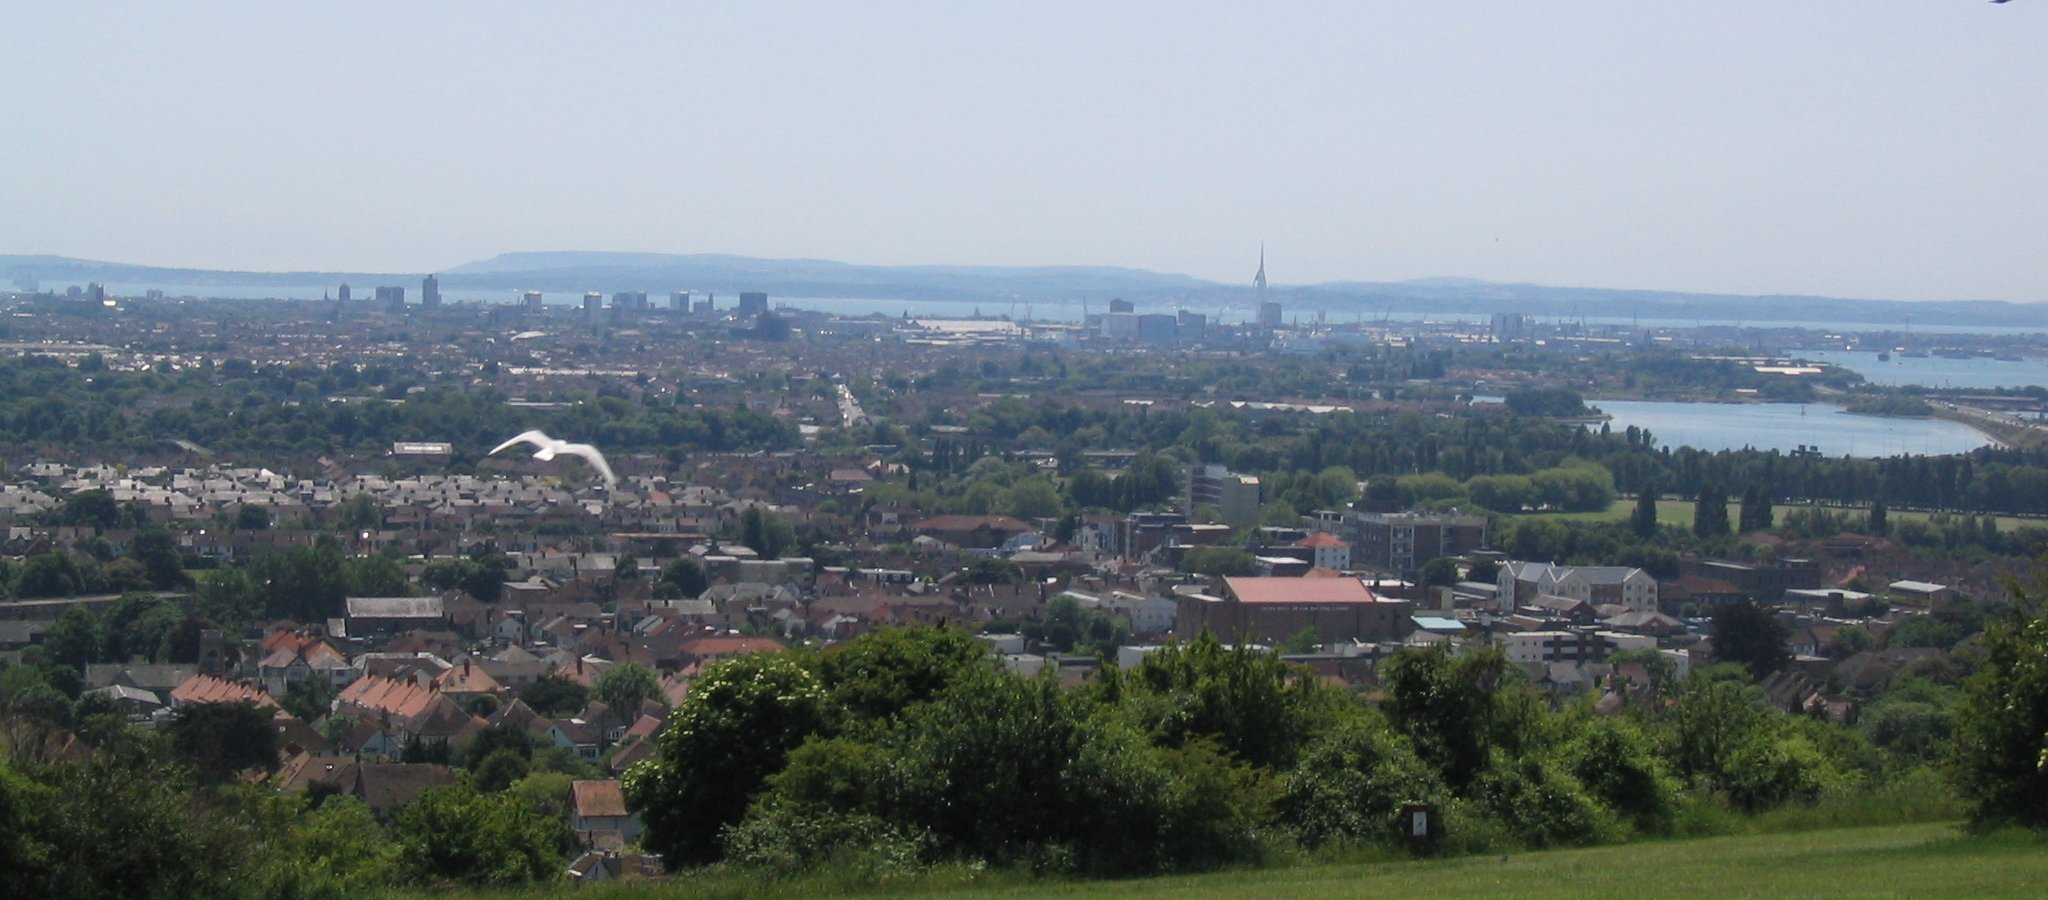 The original Portsmouth, the big difference is the high rise buildings. Population: 207,100.